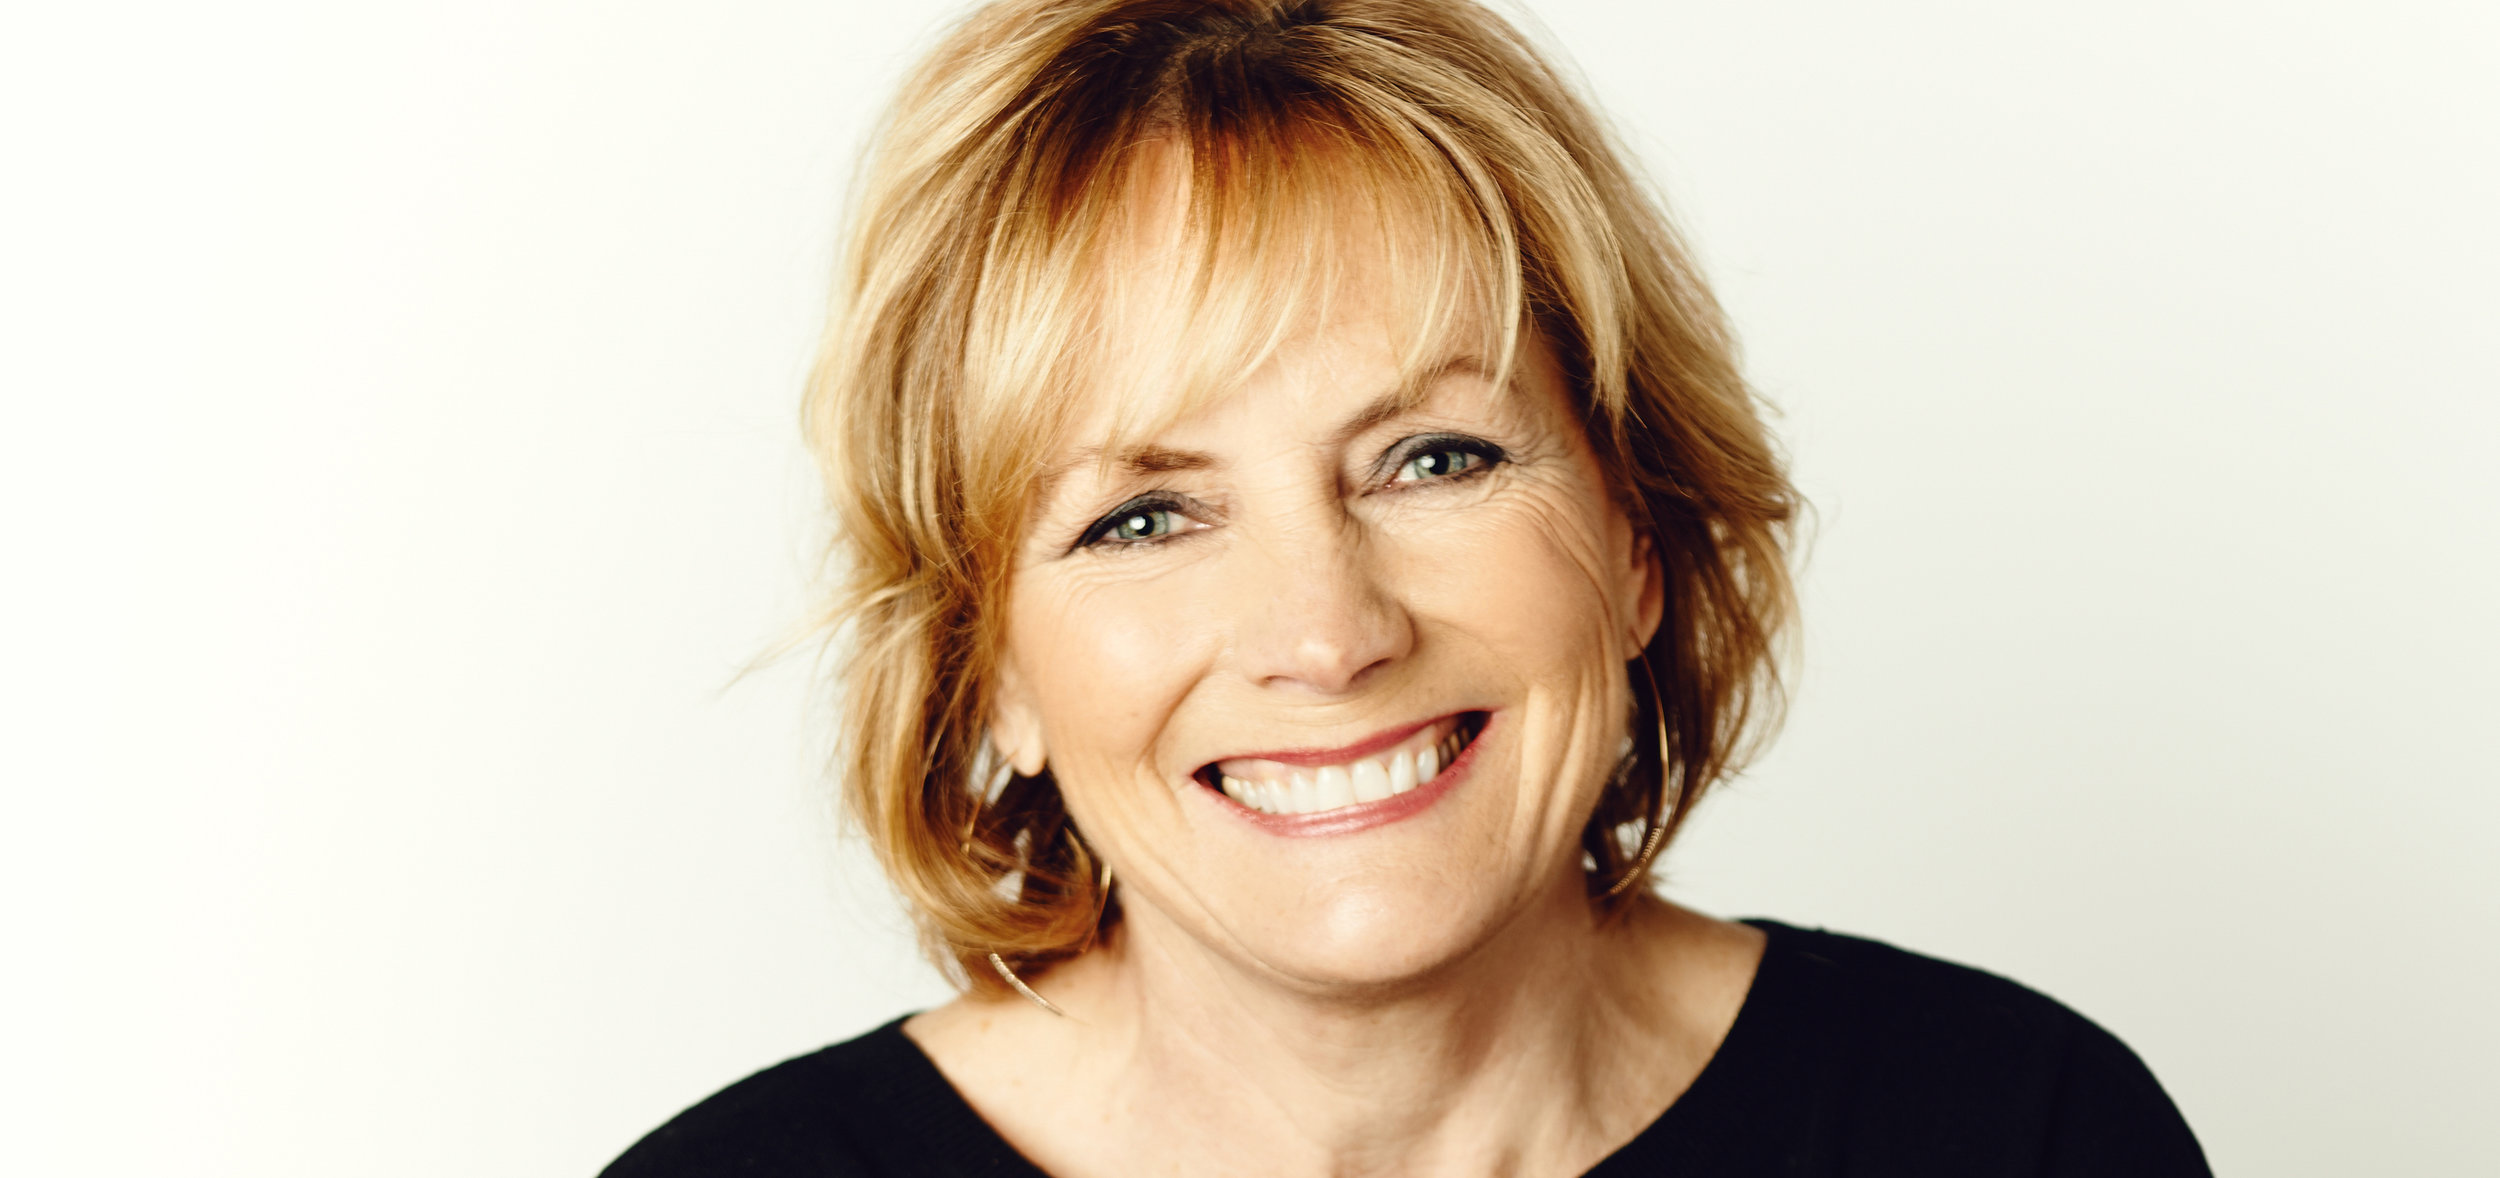 Meg Meeker - Physician and best-selling author of Strong Mothers, Strong Sons. You can find her at megmeekermd.com